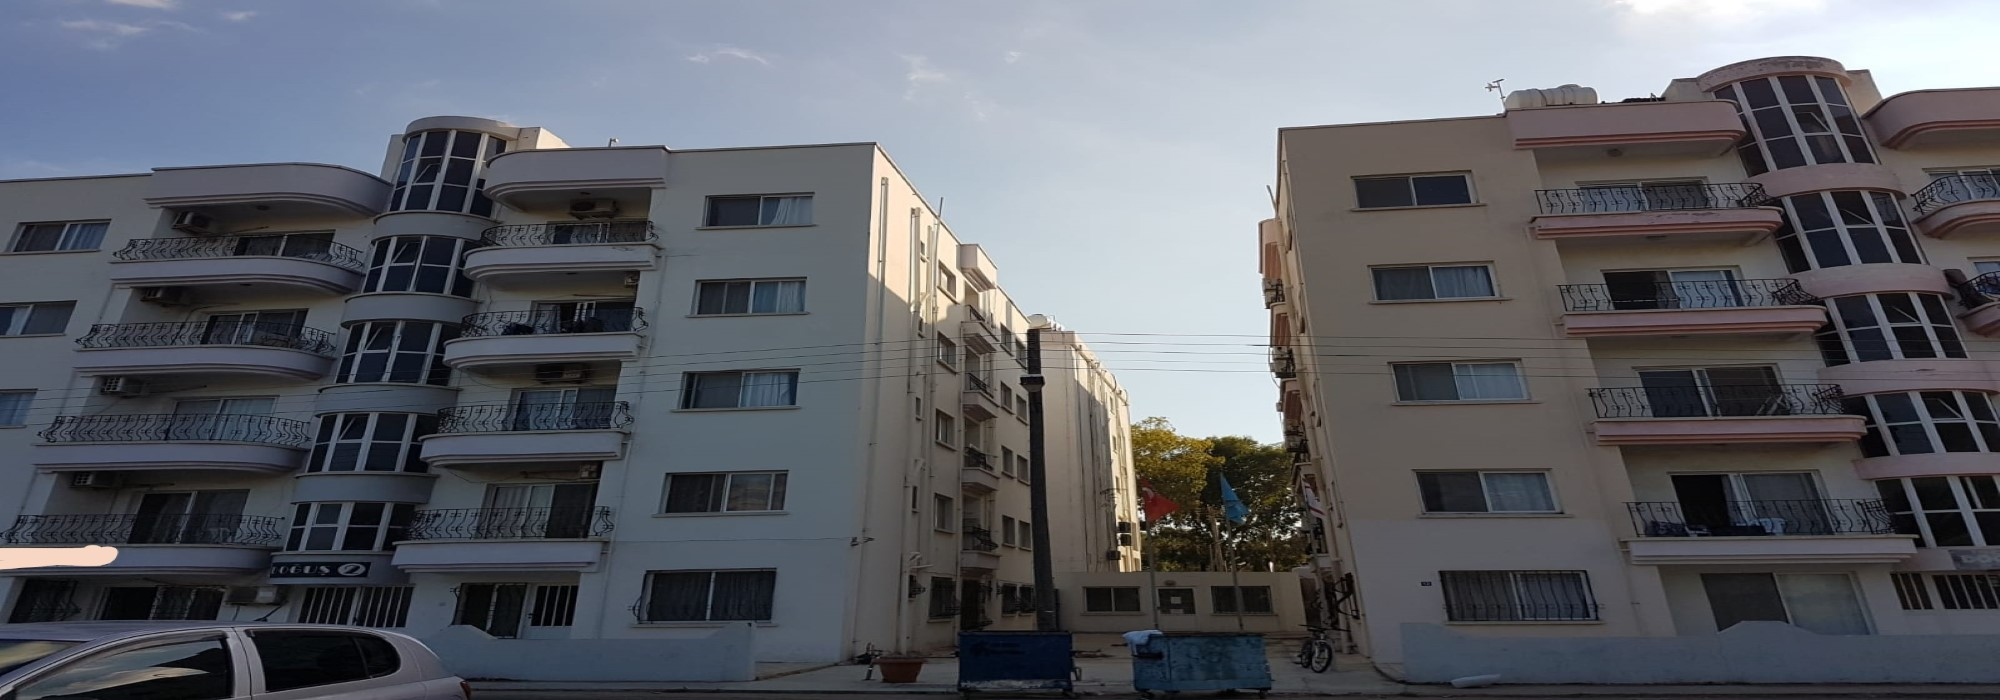 Two Entire Apartment Blocks For Sale Location Near Emu University Magusa (Turkish Title Deeds)